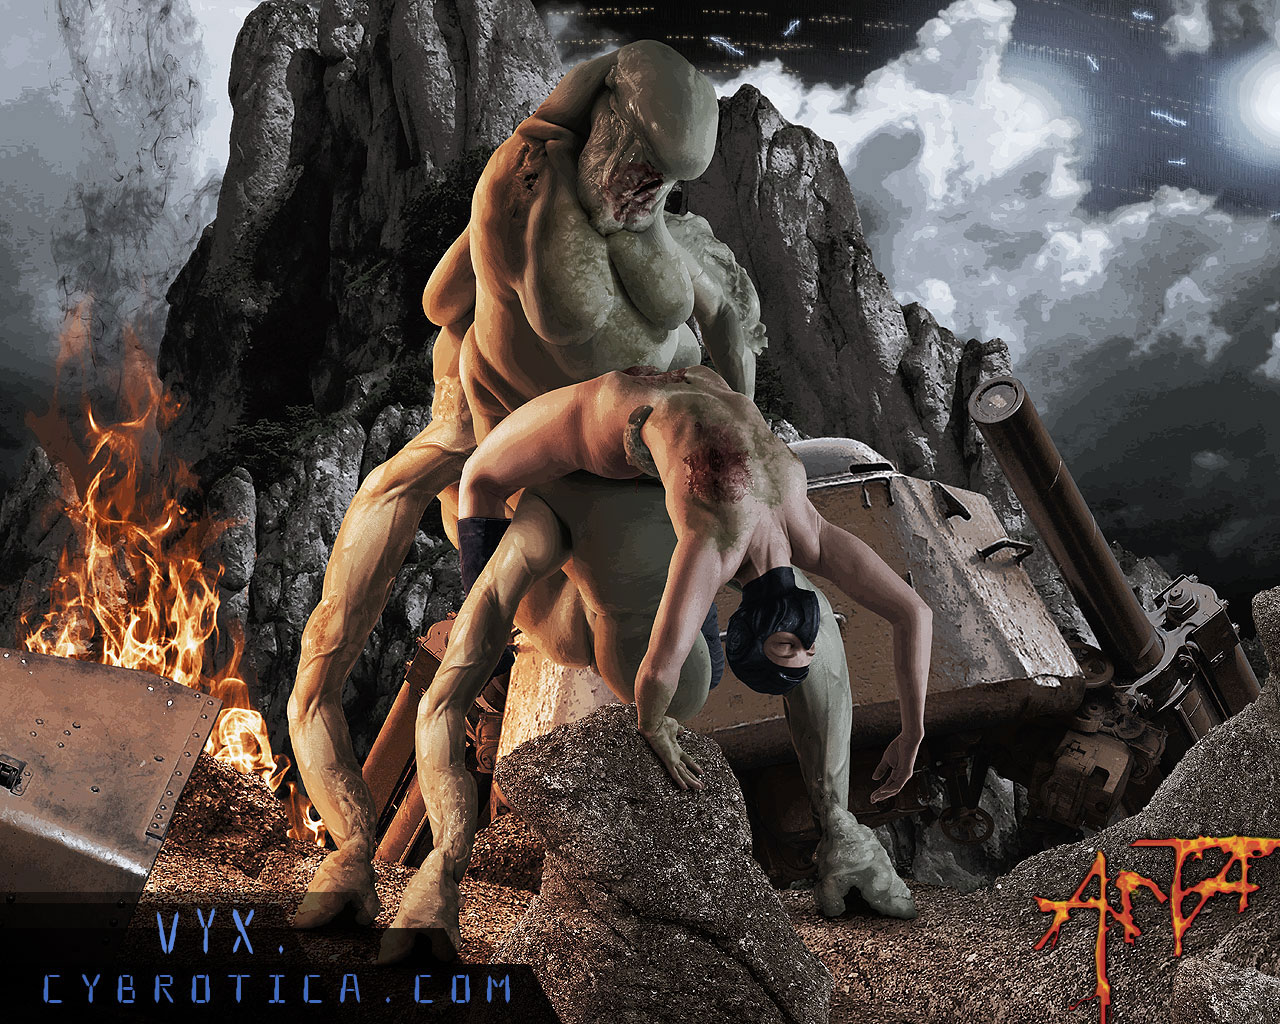 Erotica erotic art sci-fi fantasy art sexual videos